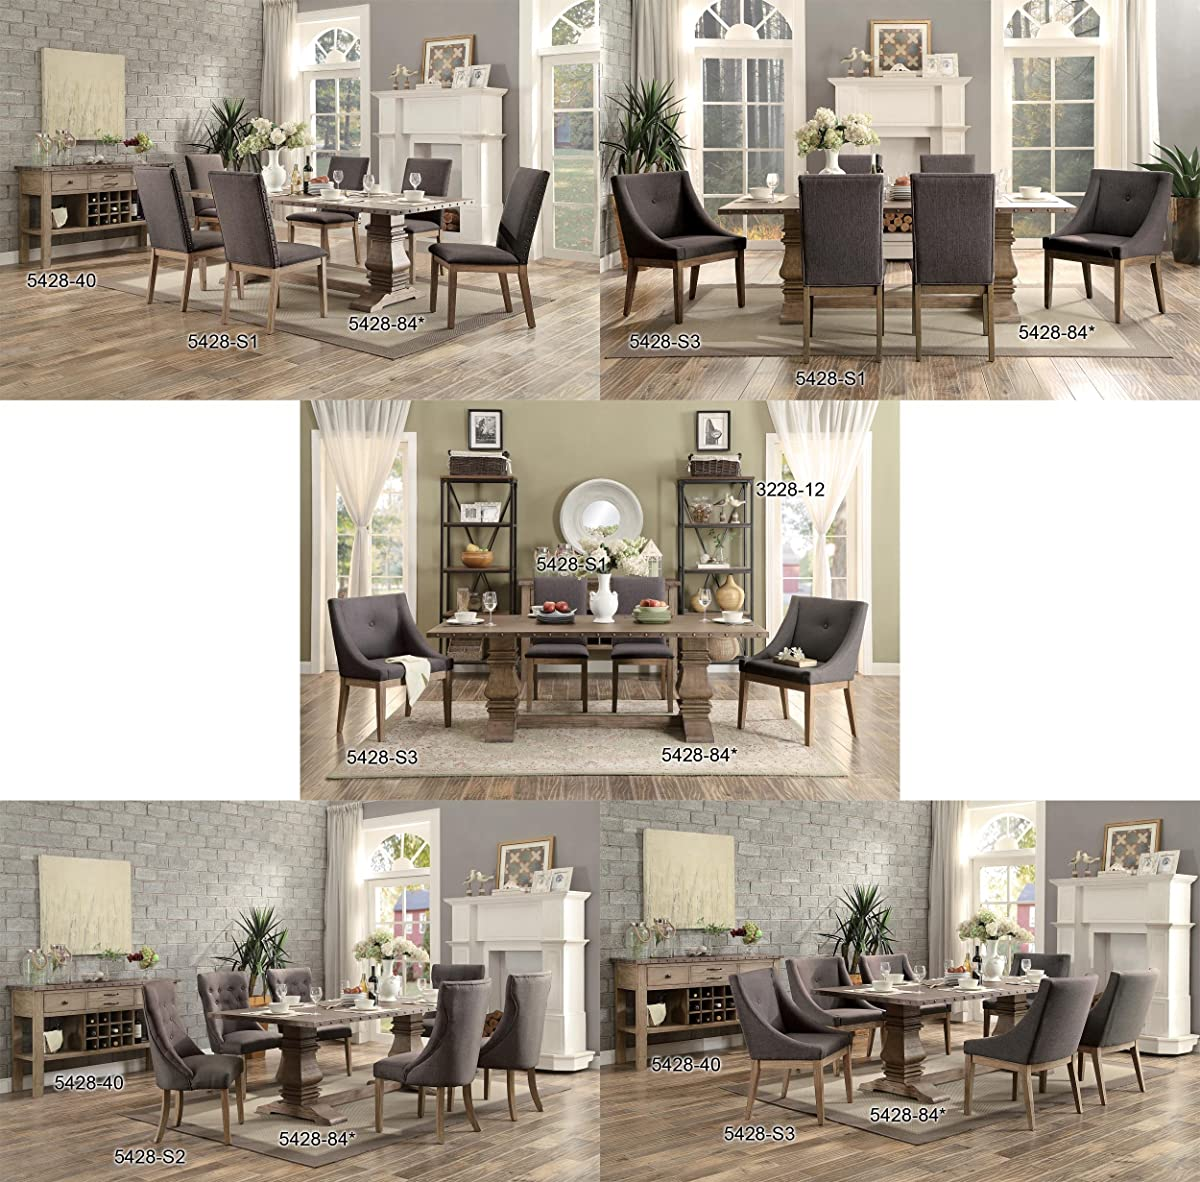 Homelegance Anna Claire 84 inch Rectangular Table with Pedestal Base and Nail Head Accent Banding, Rusticated Zinc Top